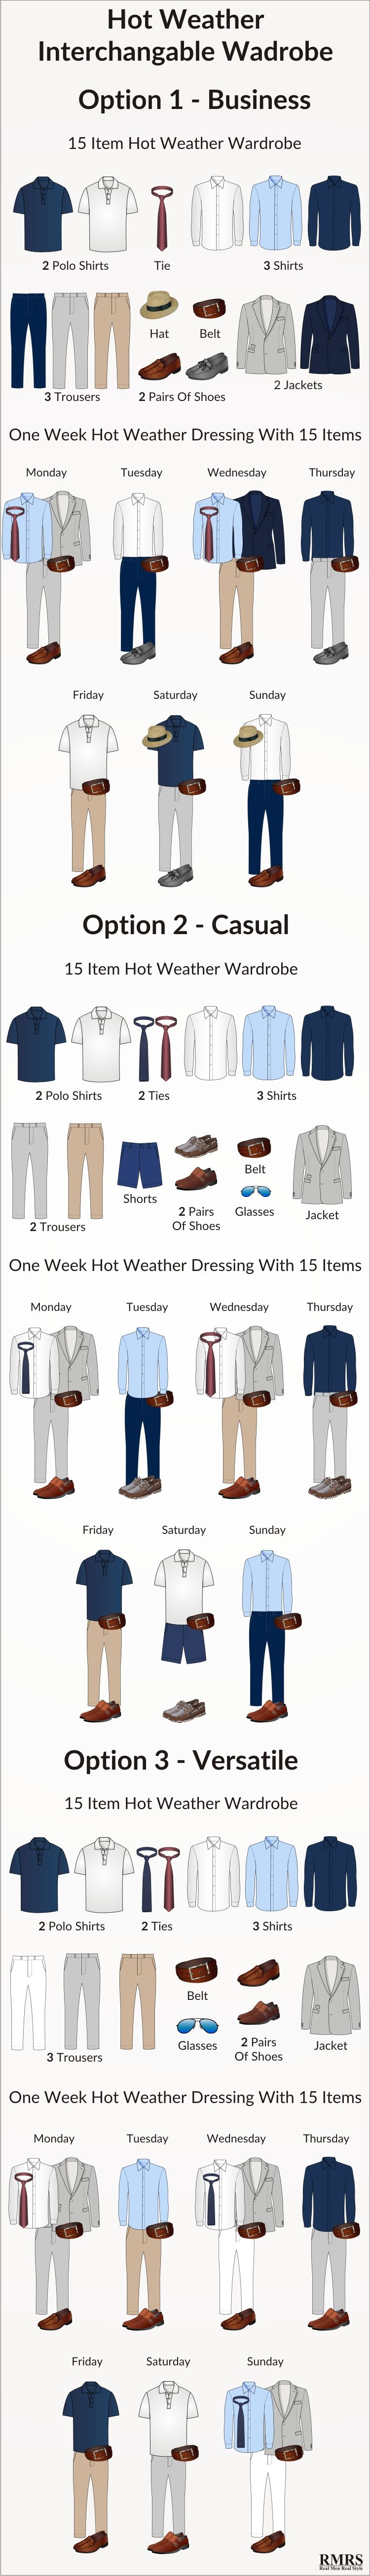 Dress Code Guide: What Does Business Formal Mean ...